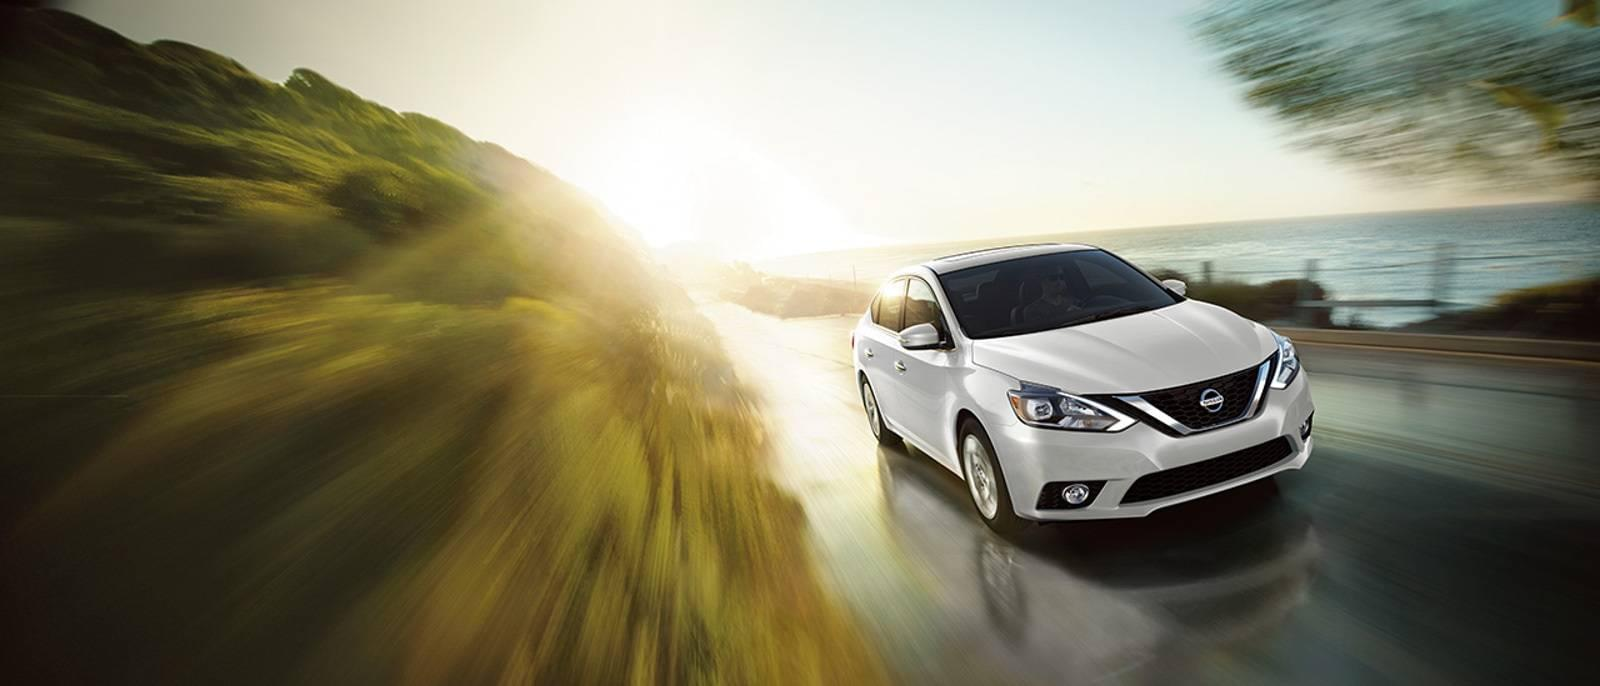 The 2017 Nissan Sentra in Indianapolis and Zionsville